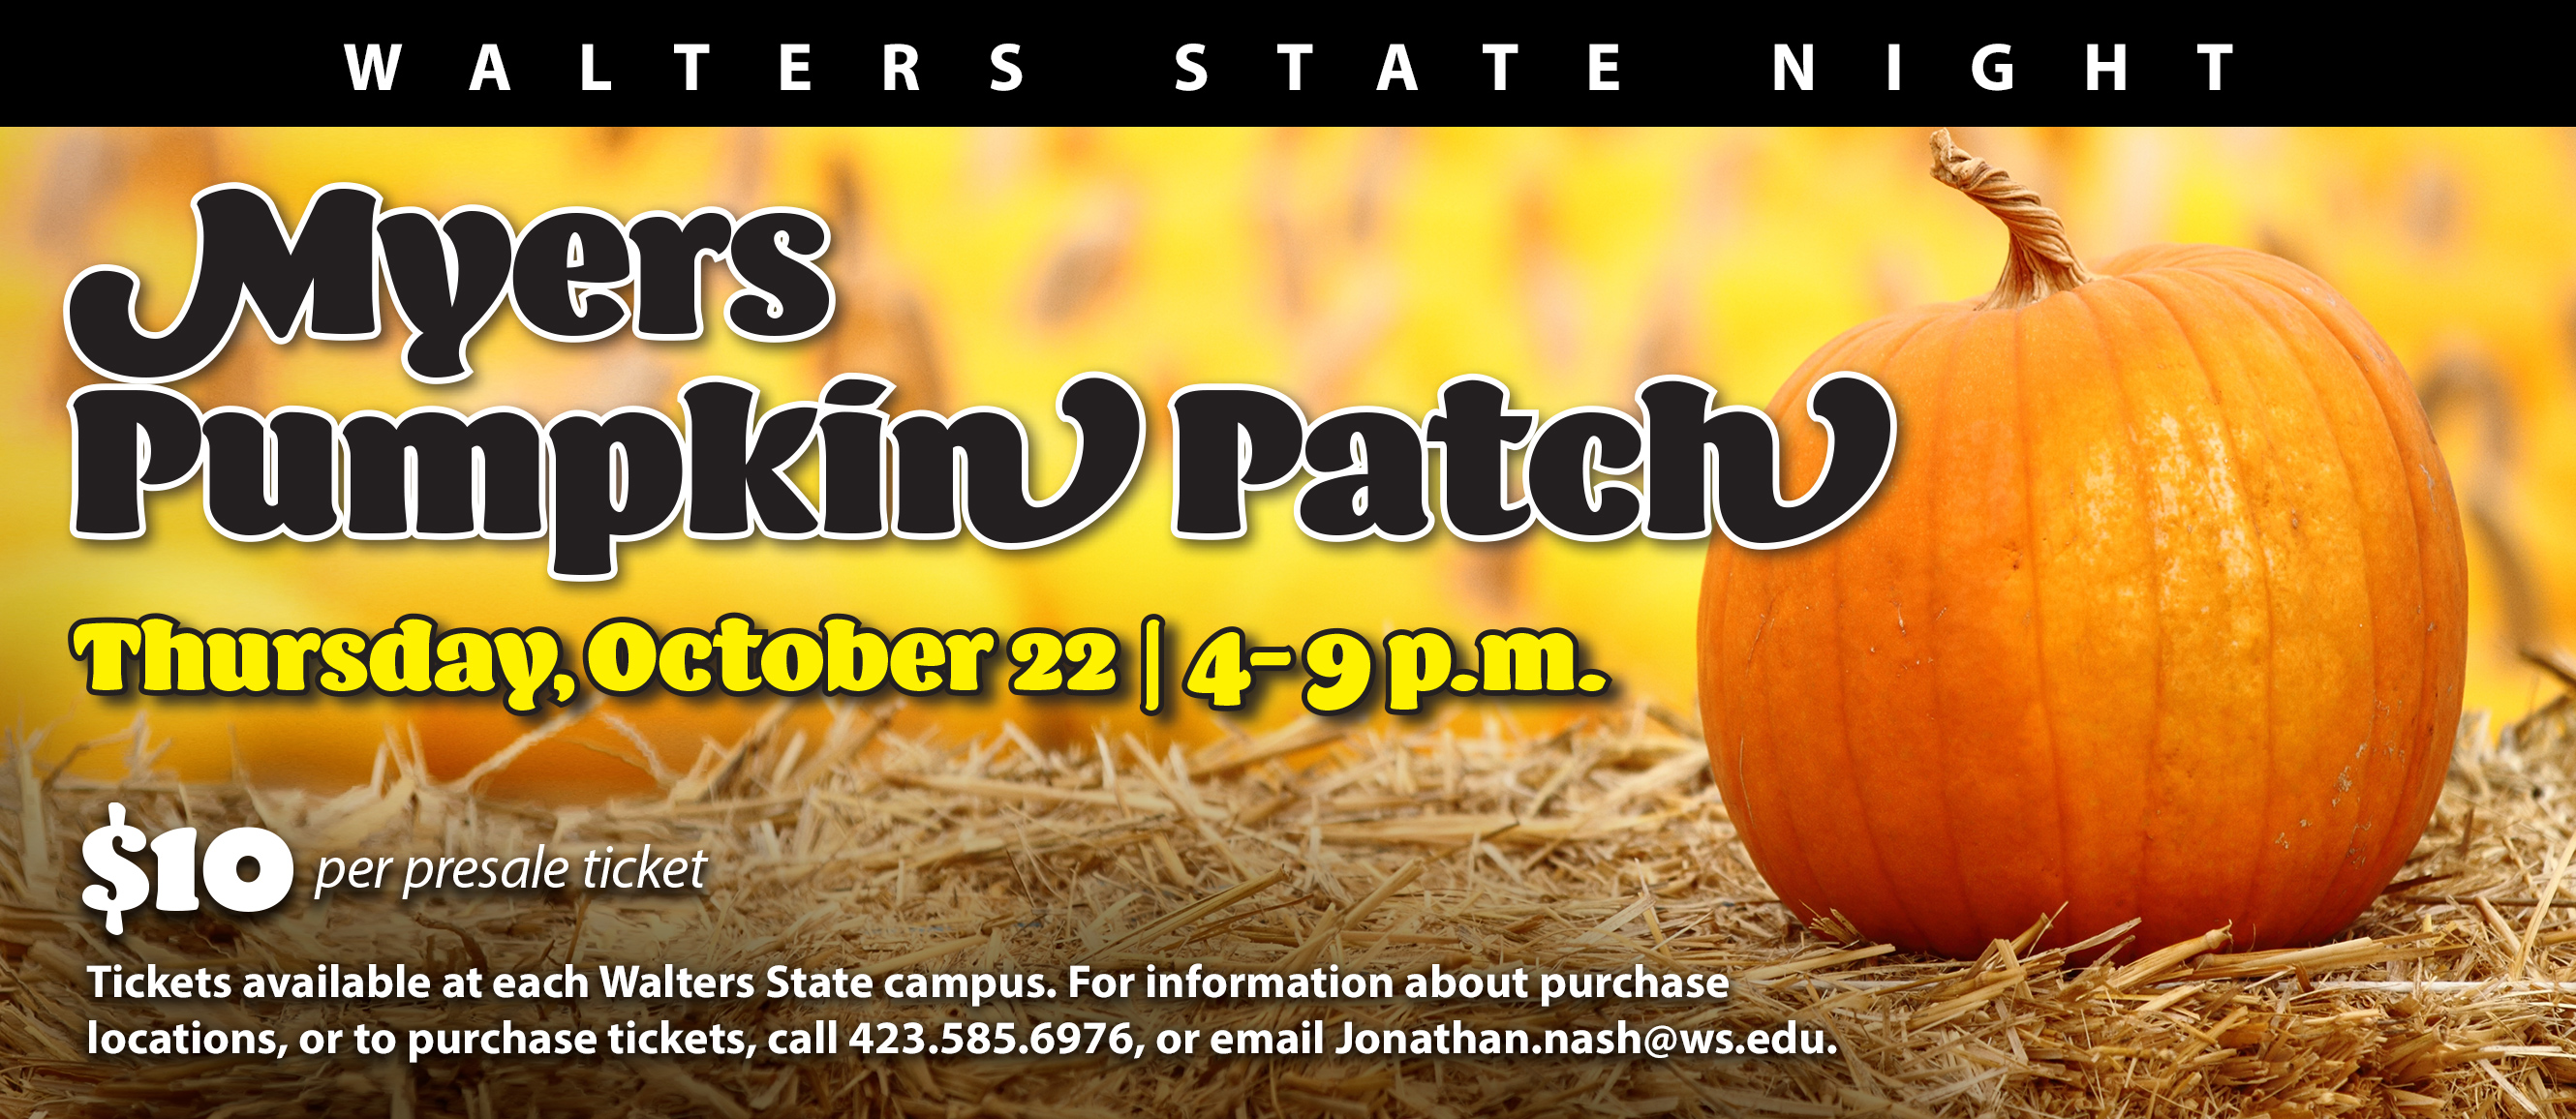 Walters State Night Myers Pumpkin Patch Thursday, October 22 from 4-9PM. $10 per presale ticket. Tickets available at each Walters State campus. For information about purchase locations, or to purchase tickets, call 423.585.6976, or email jonathan.nash@ws.edu